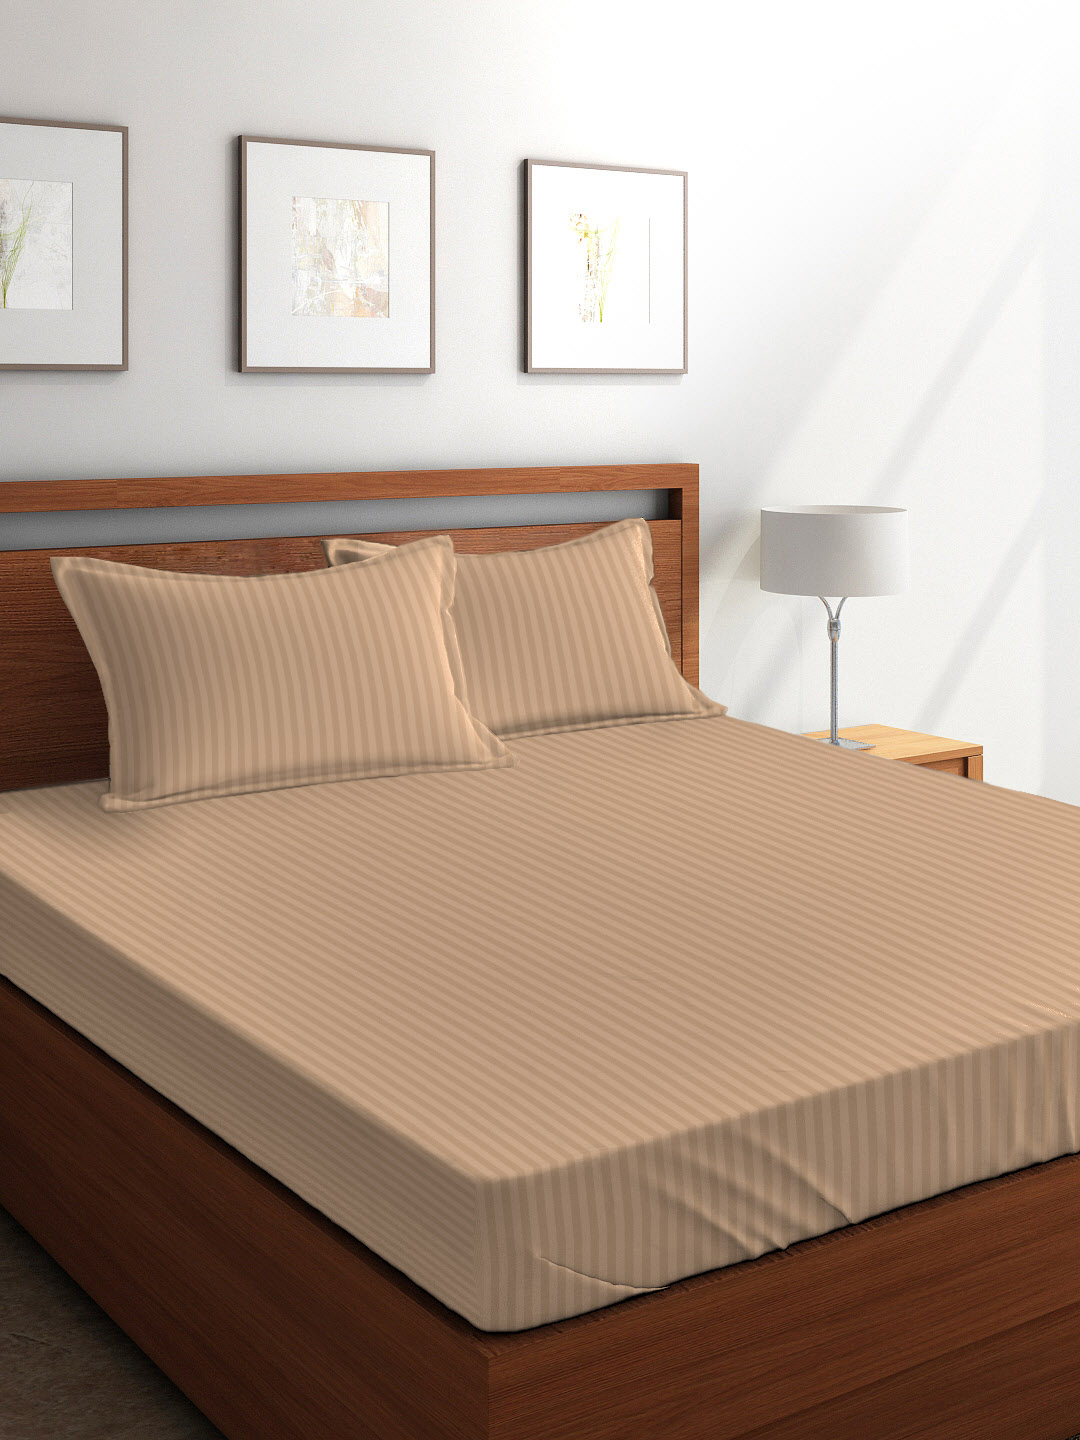 Tangerine Weaved Cotton Double Bed Sheets in Beige Colour by Tangerine